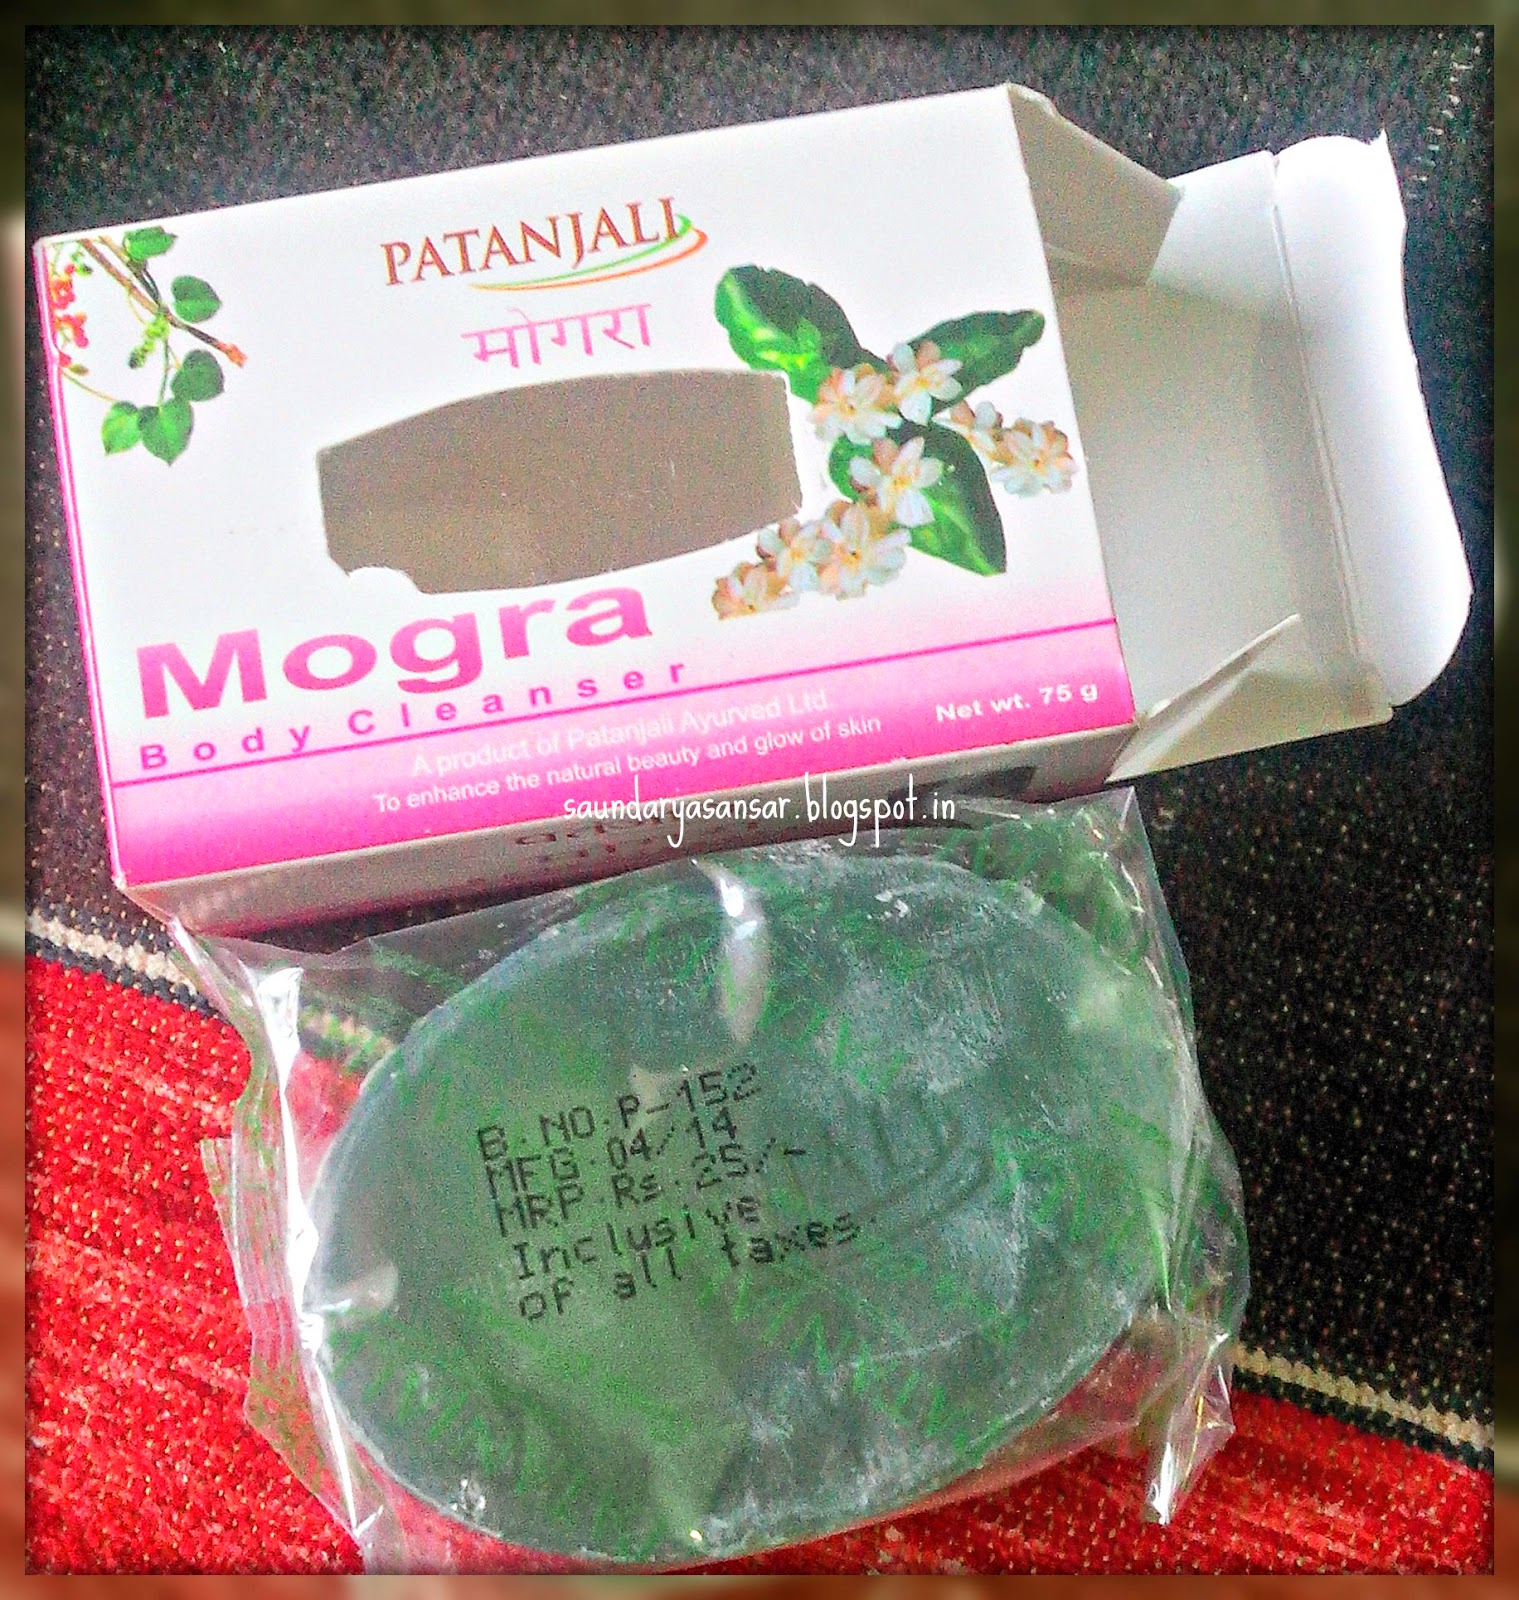 Patanjali Mogra Body Cleanser Review